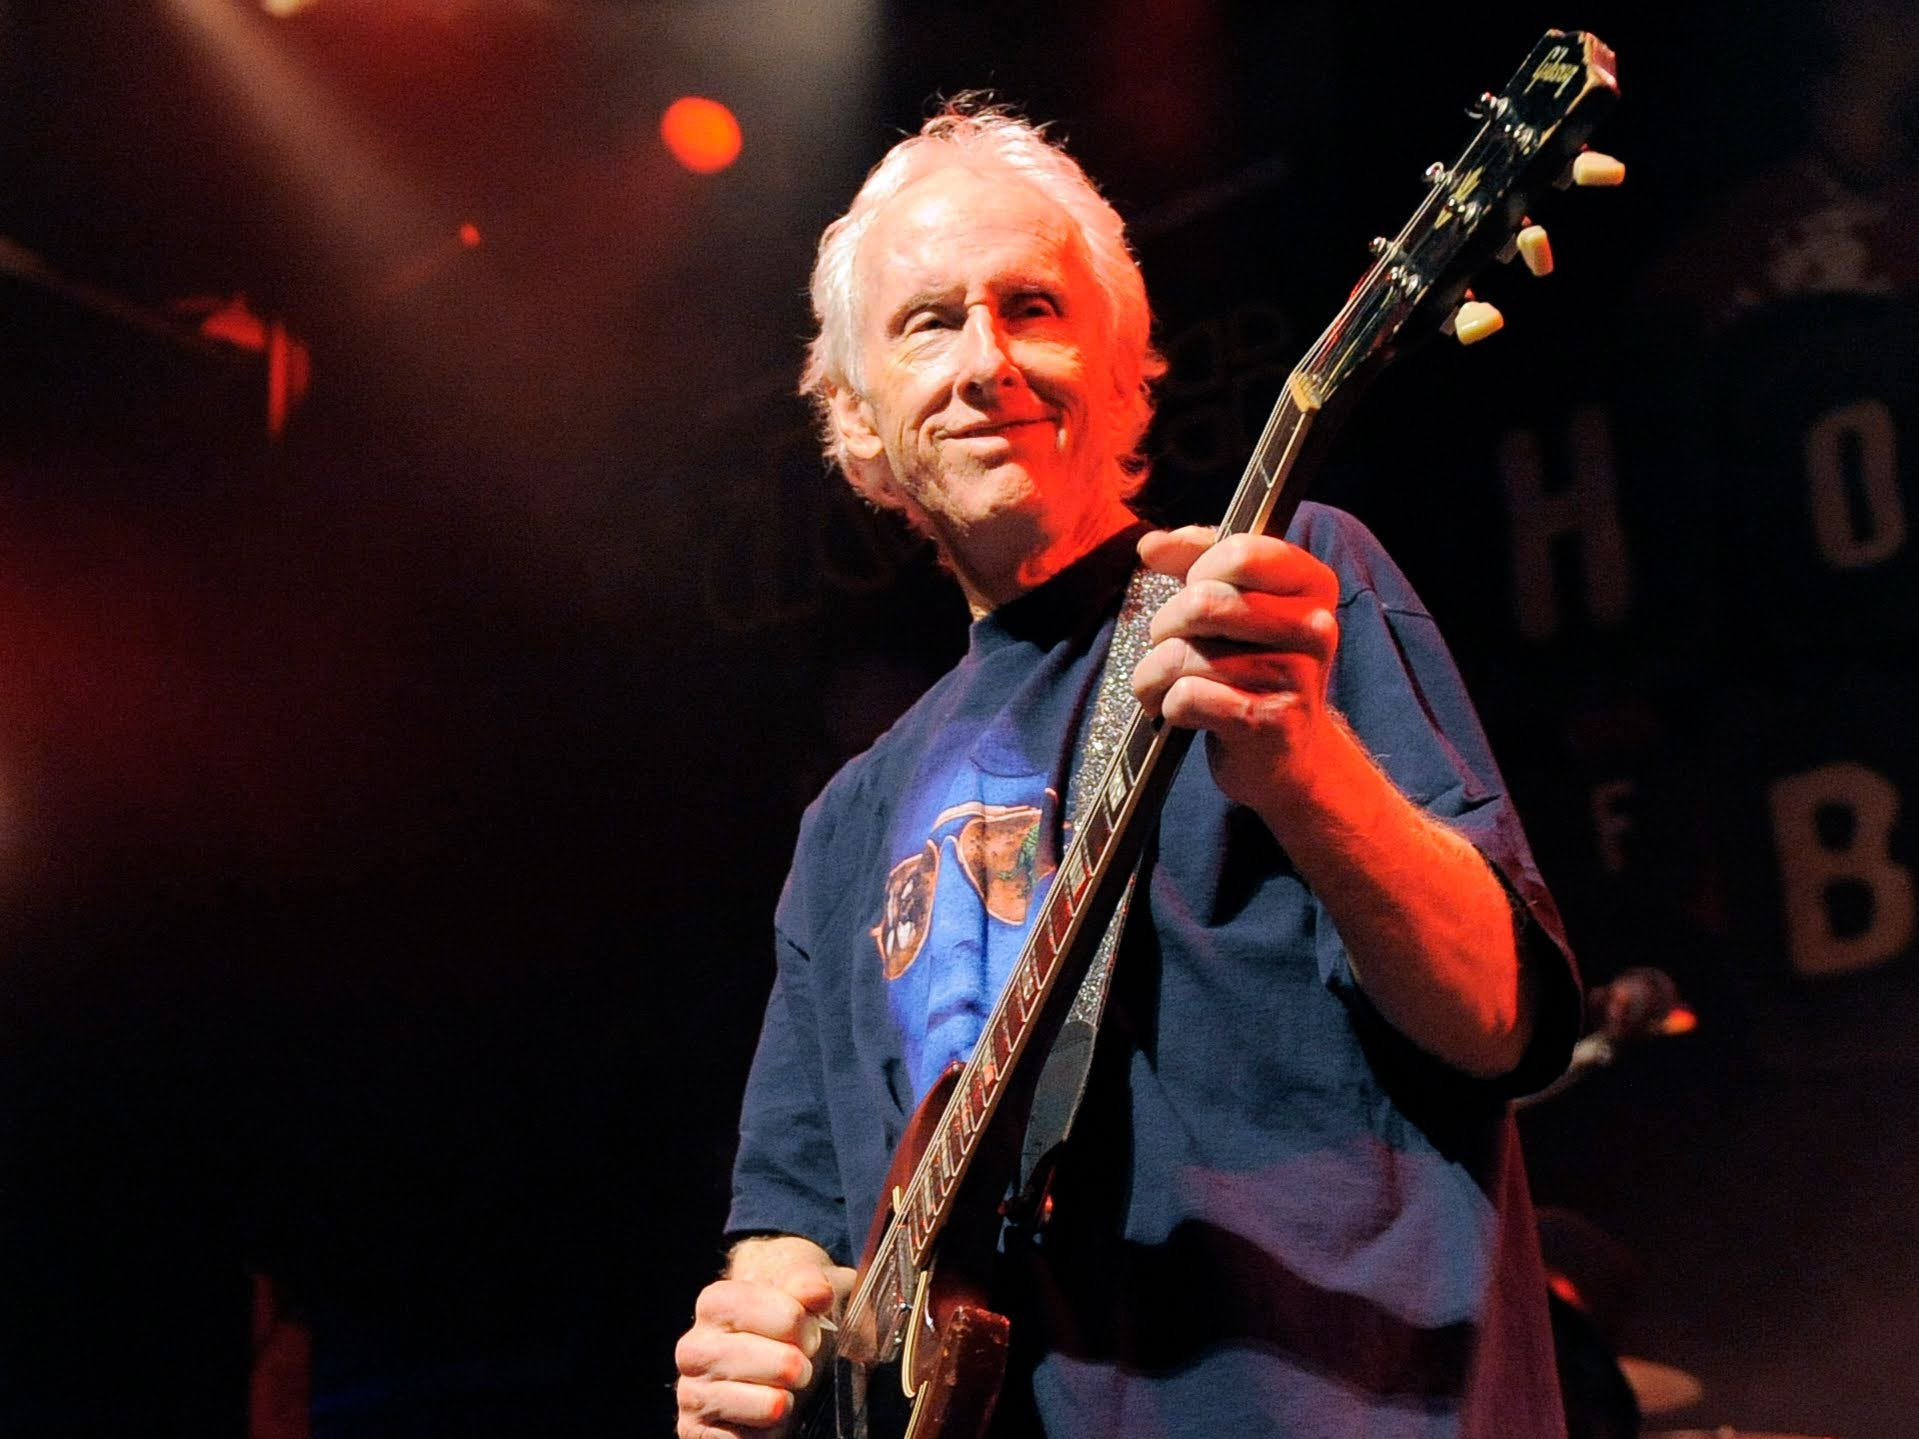 Robby Krieger Indiana State Fair The Doors  sc 1 st  IndyStar & Rock and Roll Hall of Famer Robbie Krieger joins state fair lineup